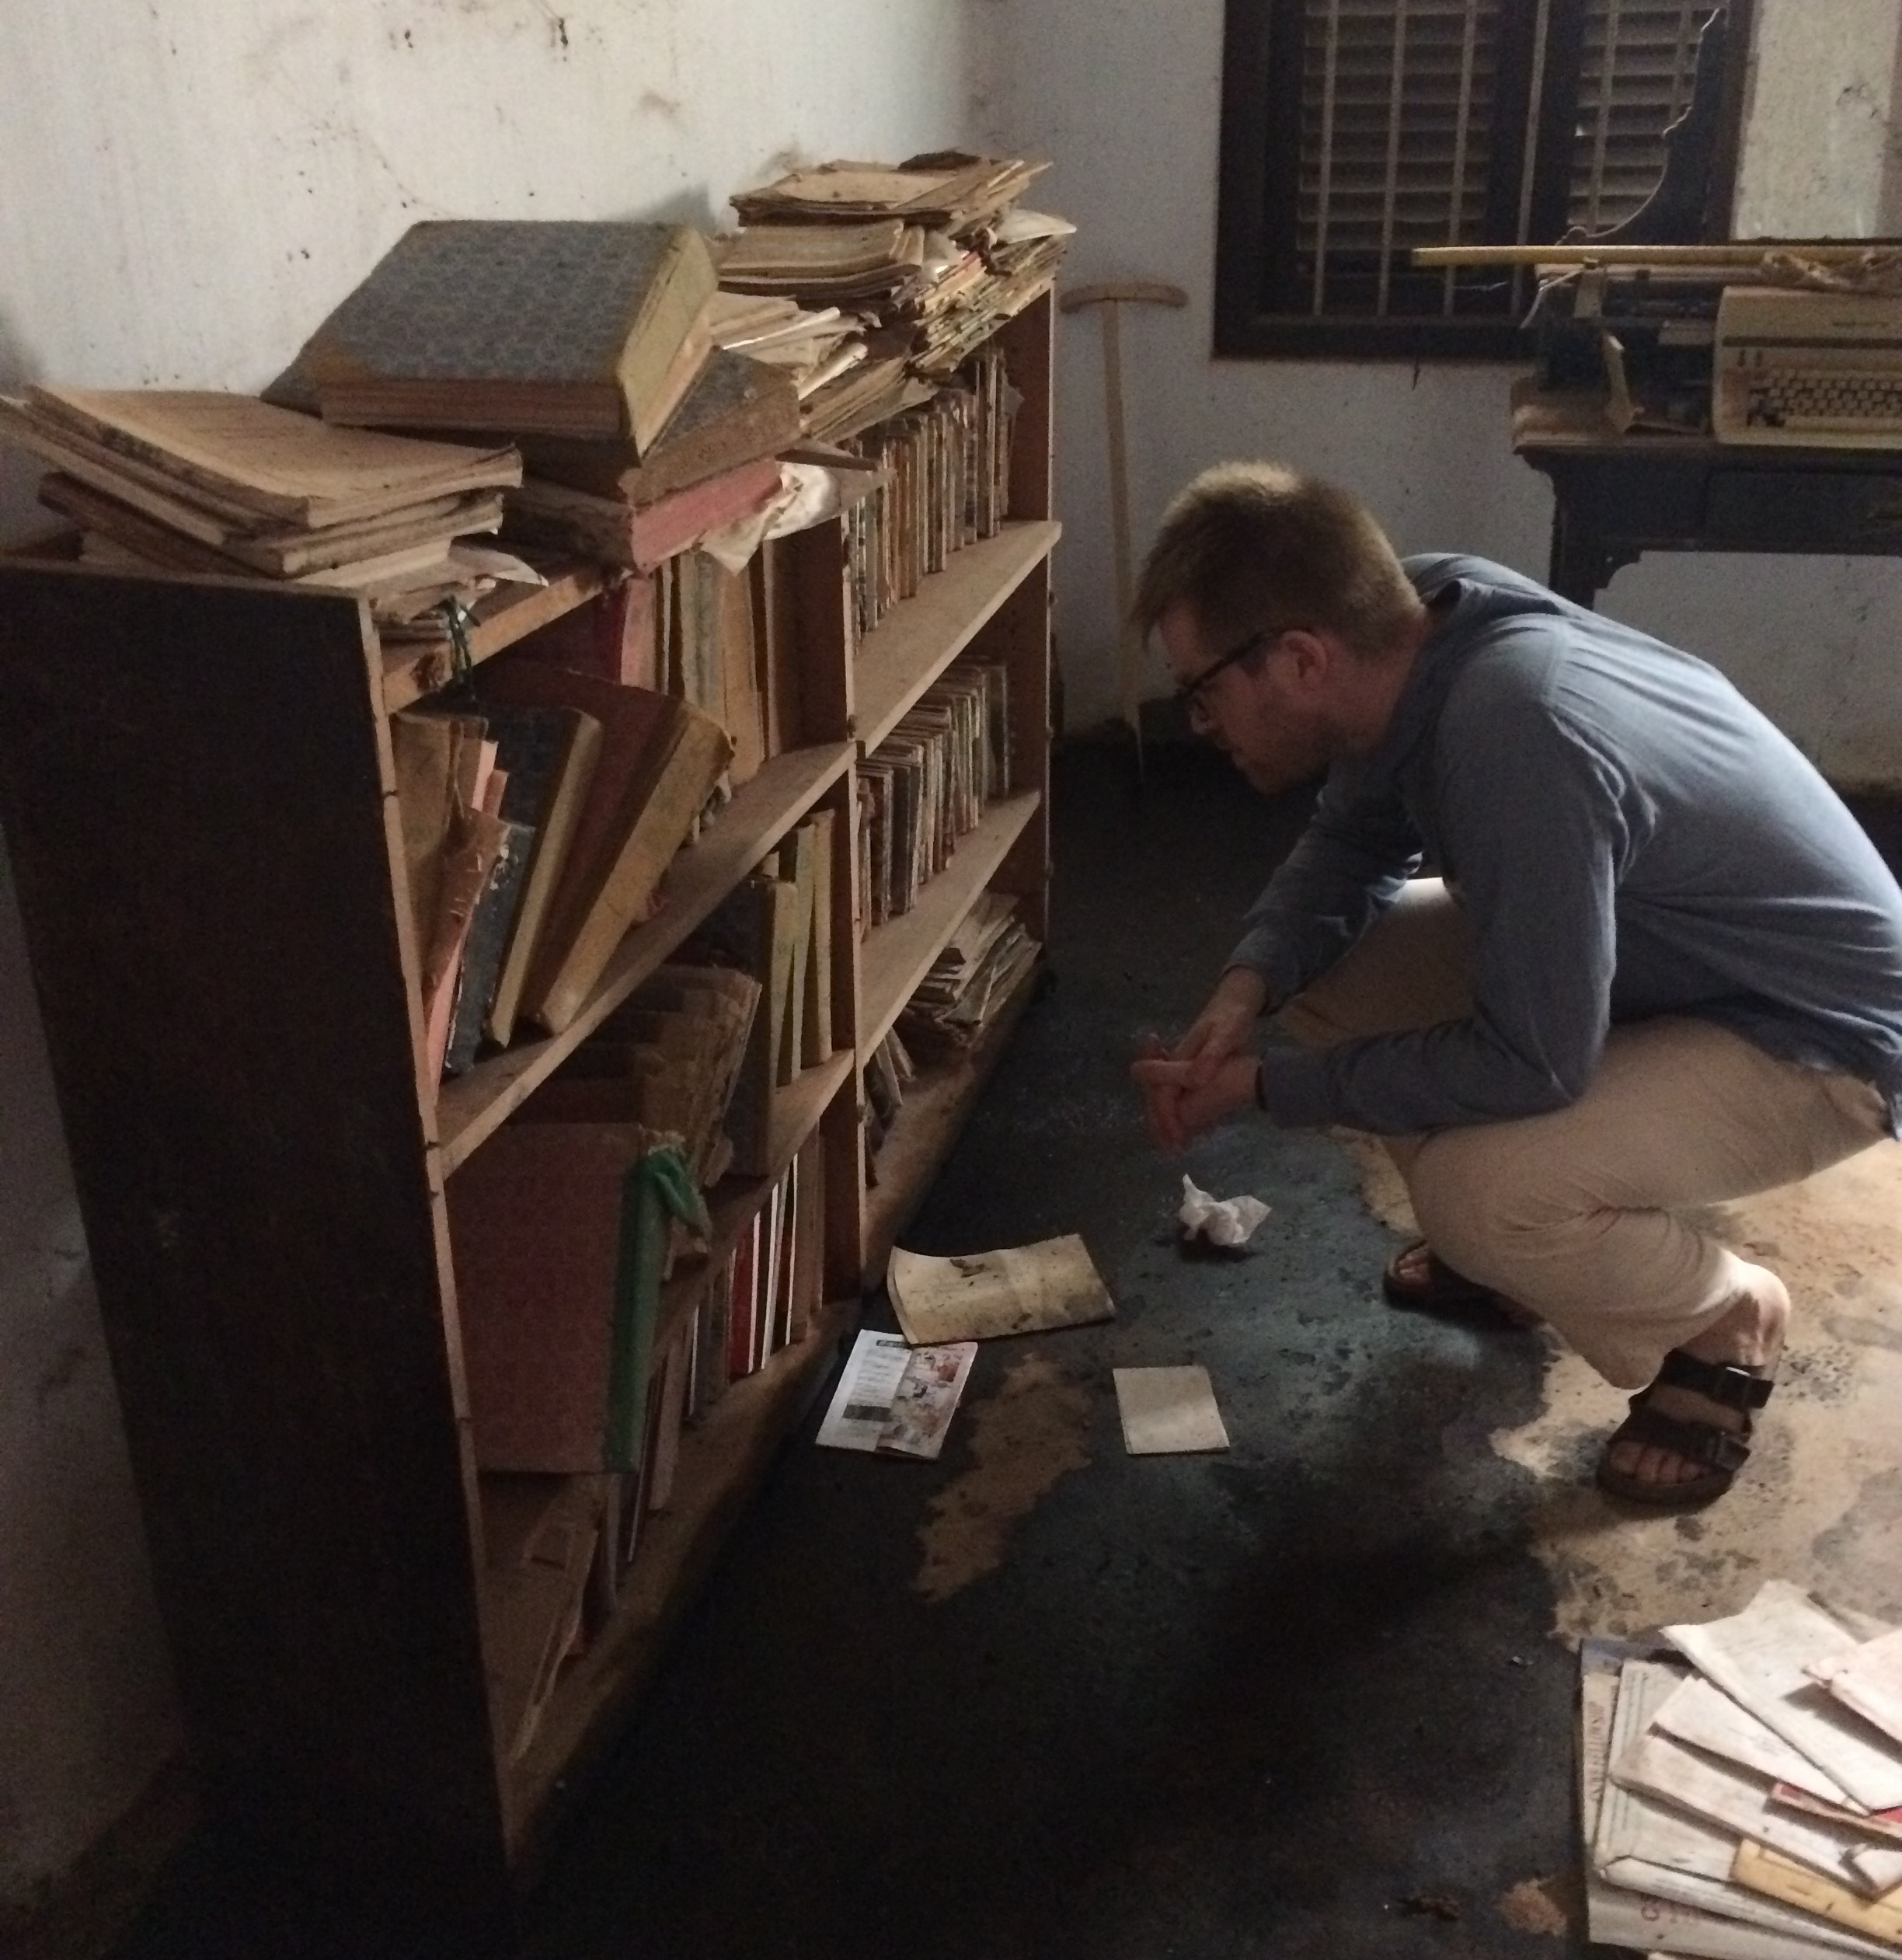 The team conducted twelve surveys of institutional and privately-held archives. The black liquid on the floor of this archive is motor oil, spread around the base of bookshelves as rudimentary protection from insects. Photo Credit: Henria Aton